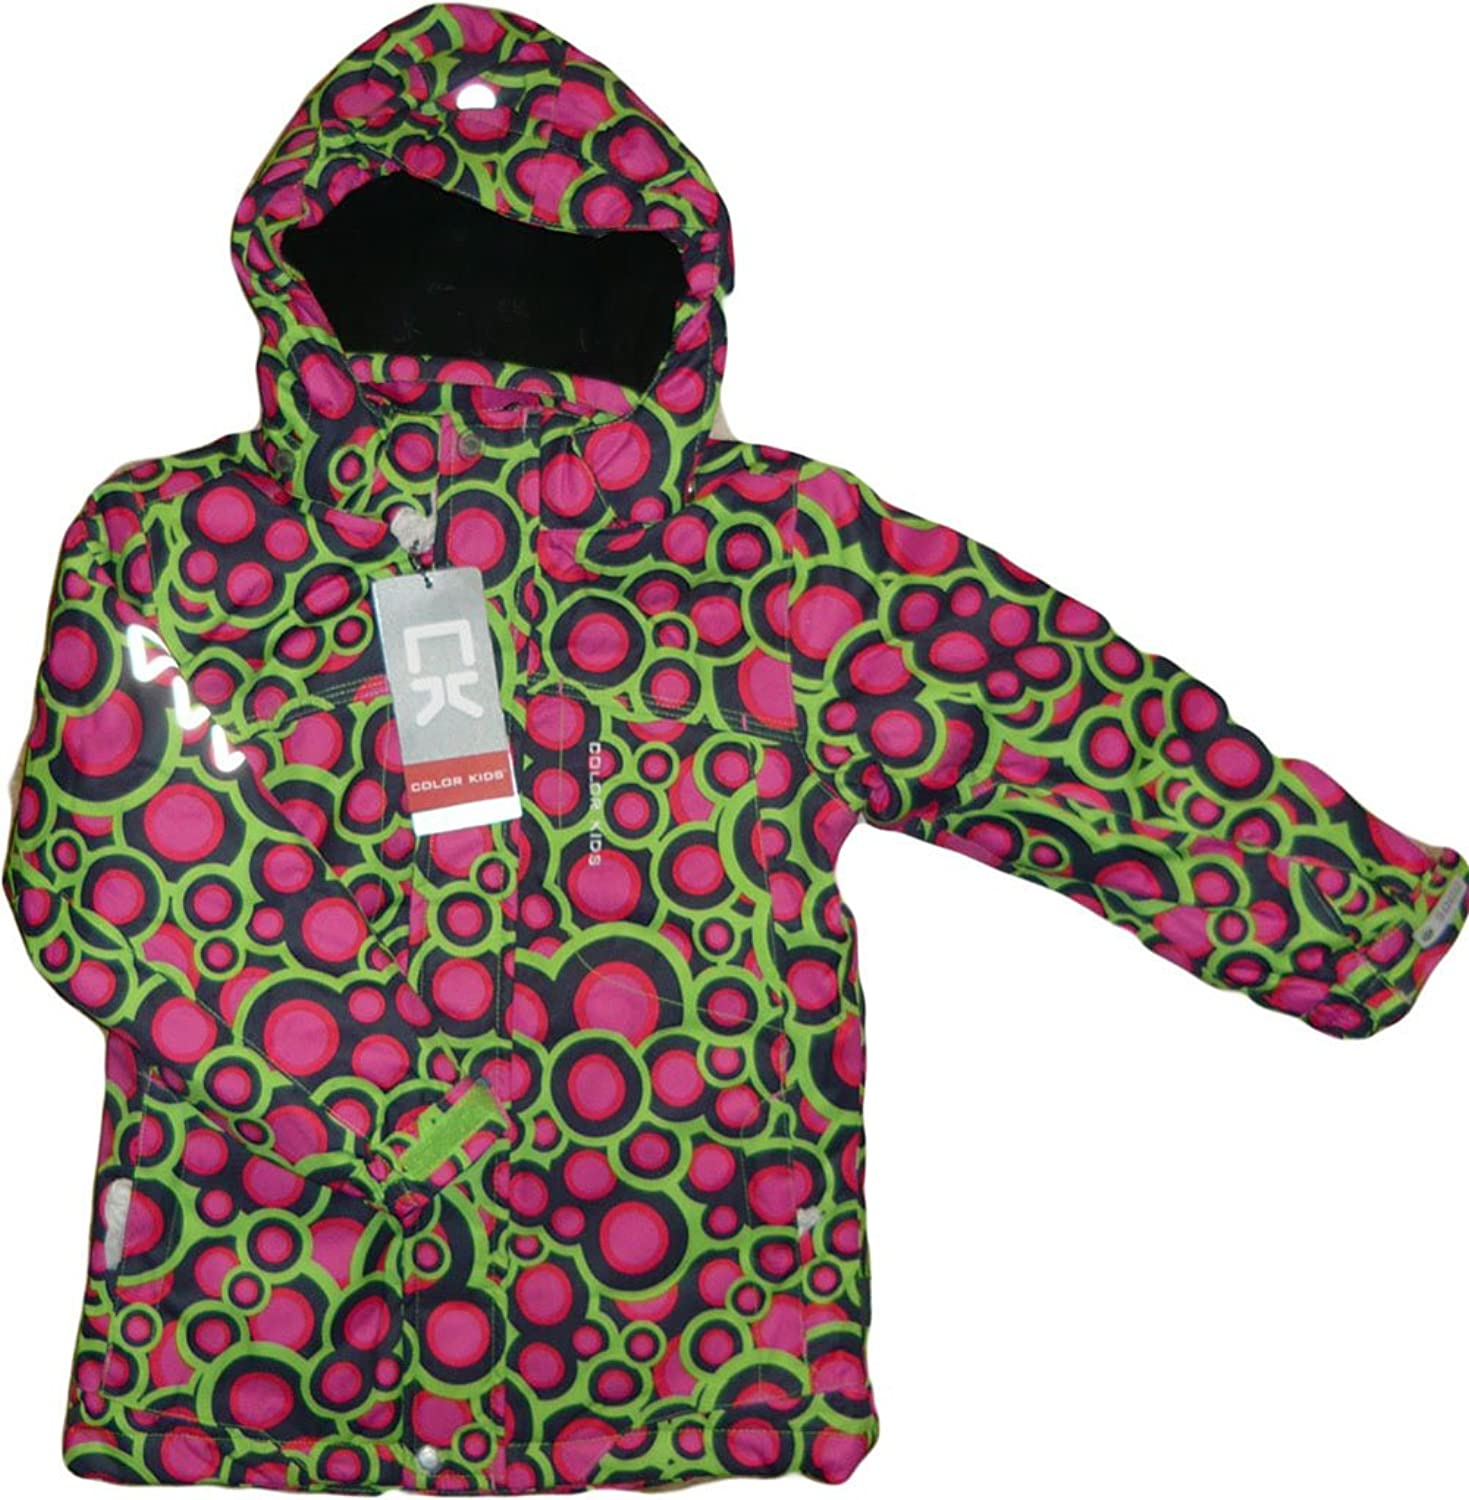 Color Kids Waikiki Ski Jacket kaufen